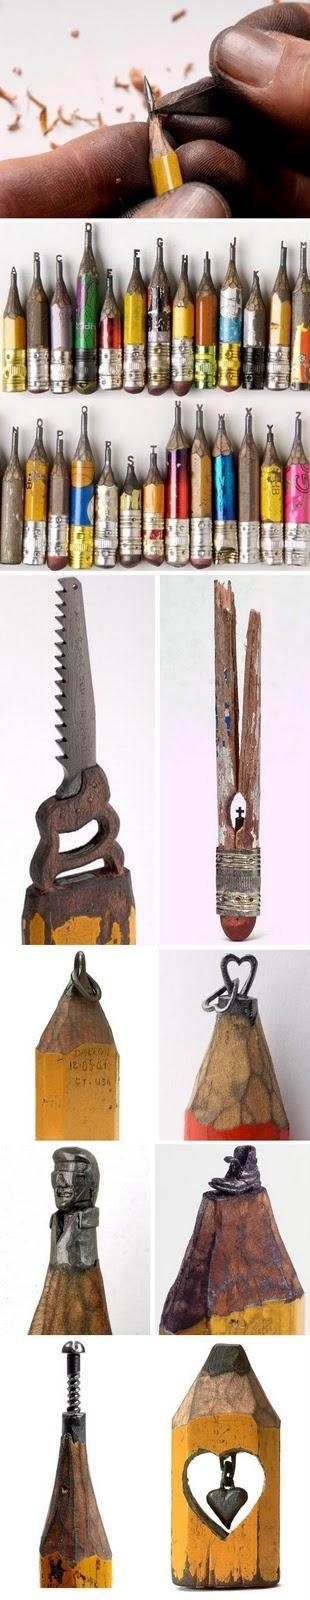 these pencil carvings are seriously amazing!!